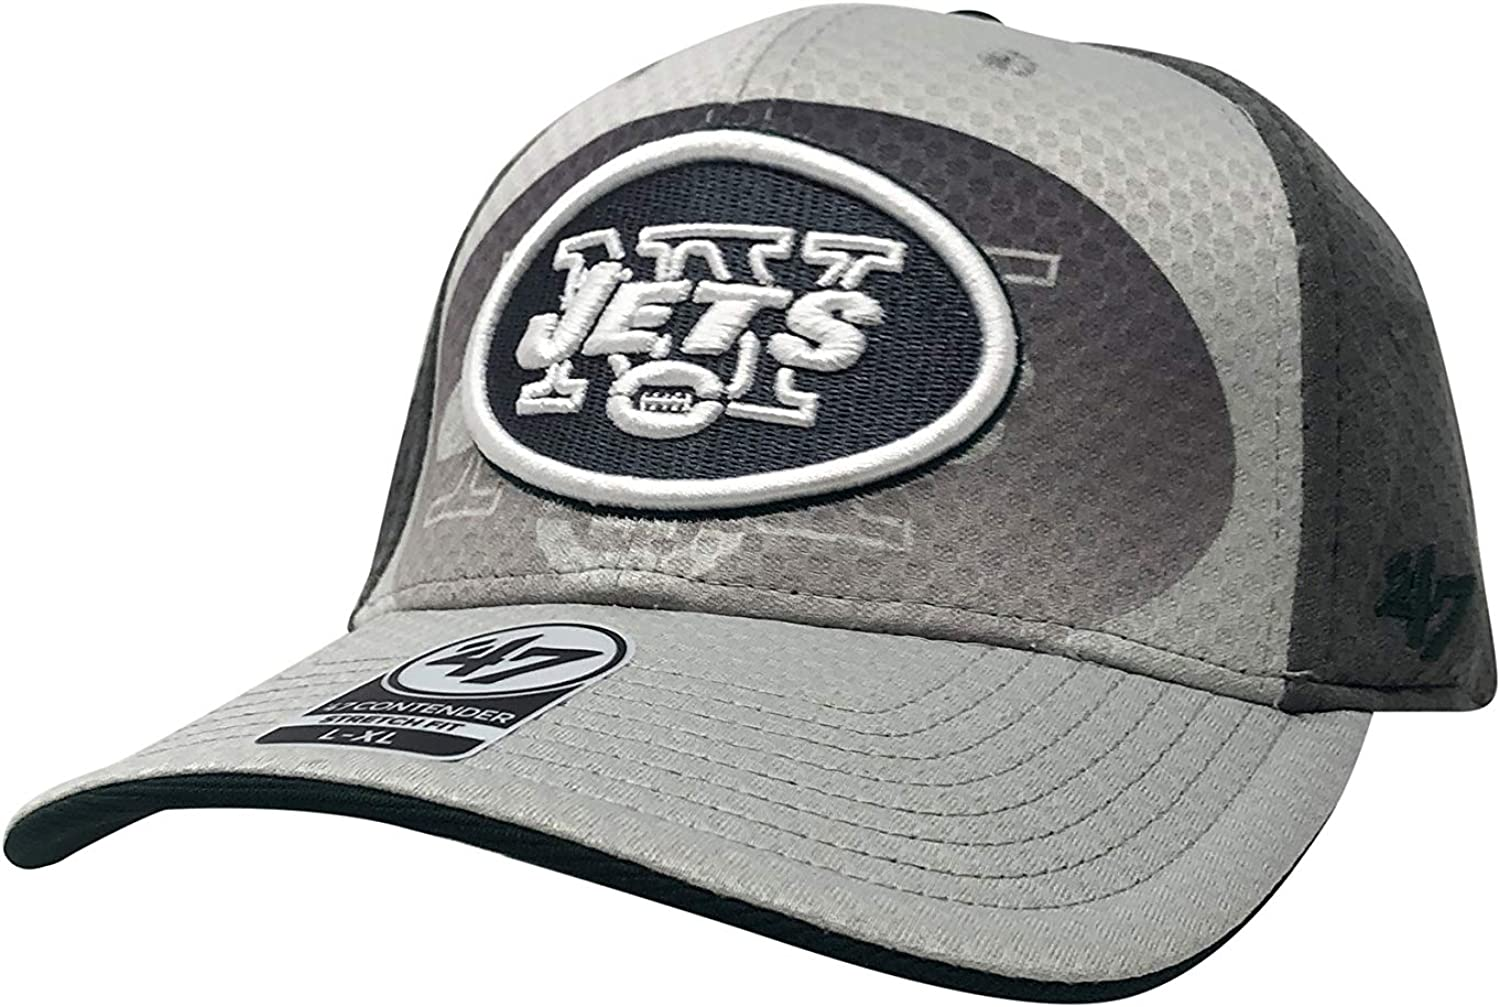 47 York Jets Contender Stretch Fit Fitted Baseball Hat Low Profile Football Cap